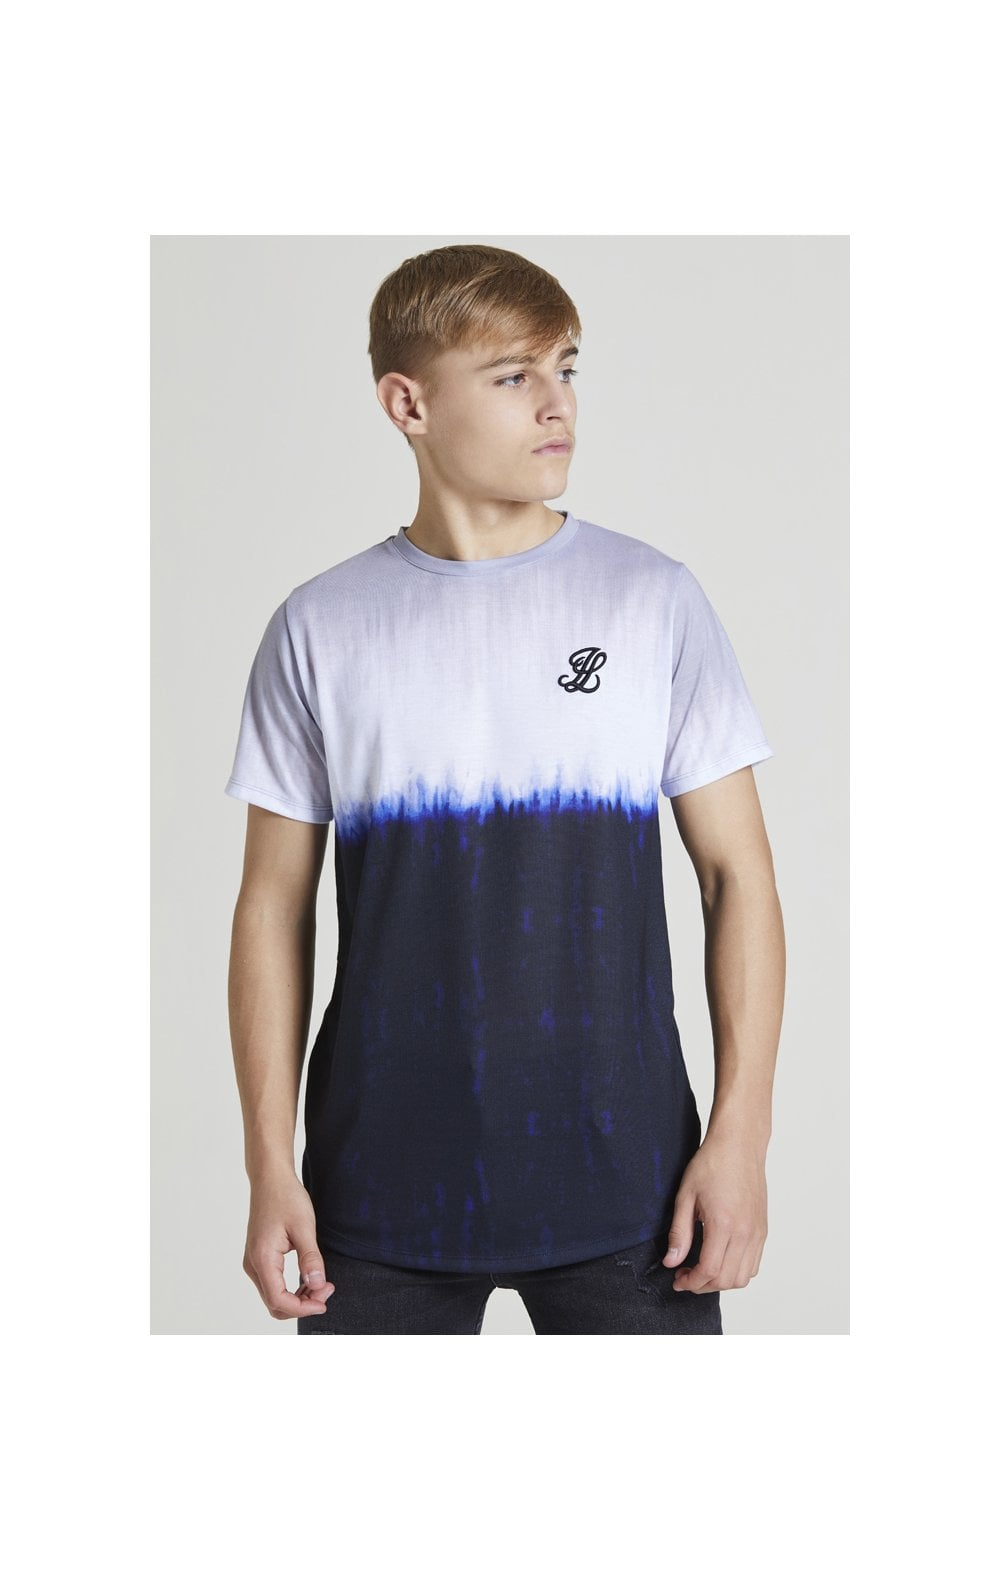 Illusive London Tie Dye Fade Tee - Grey, Navy & white (1)